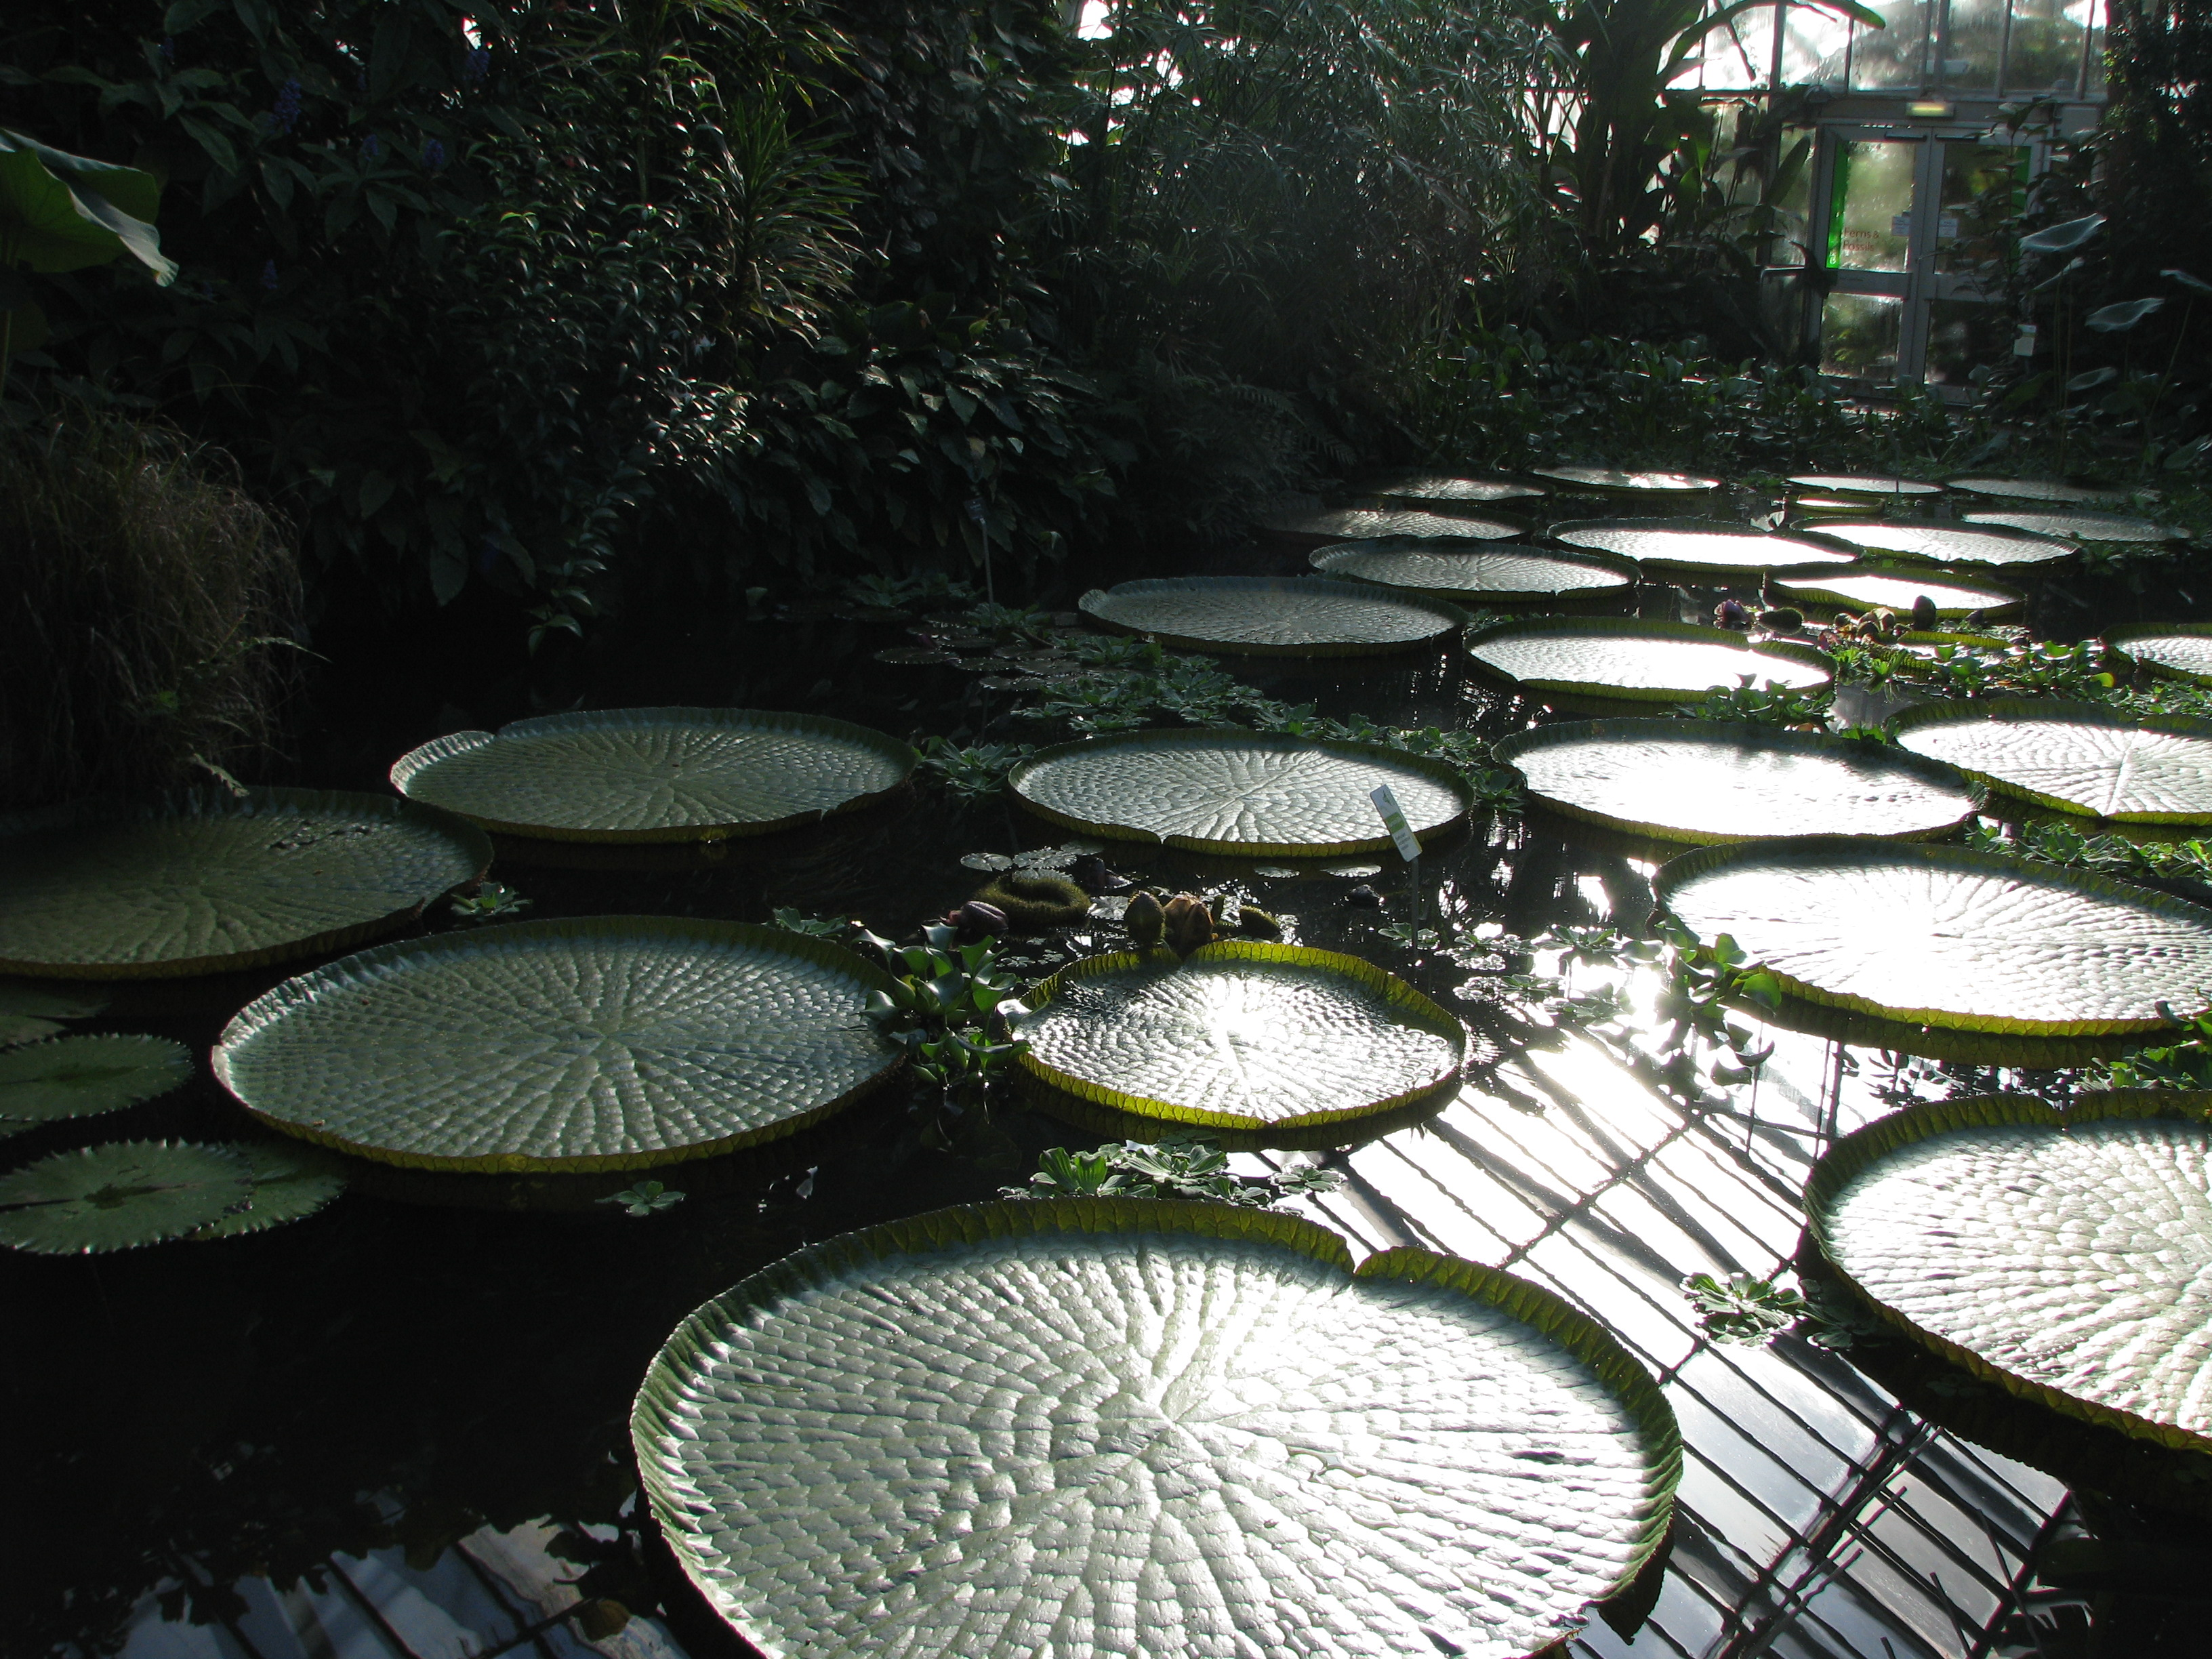 pond at the Edinburgh botanical gardens' greenhouse (but no frogs)